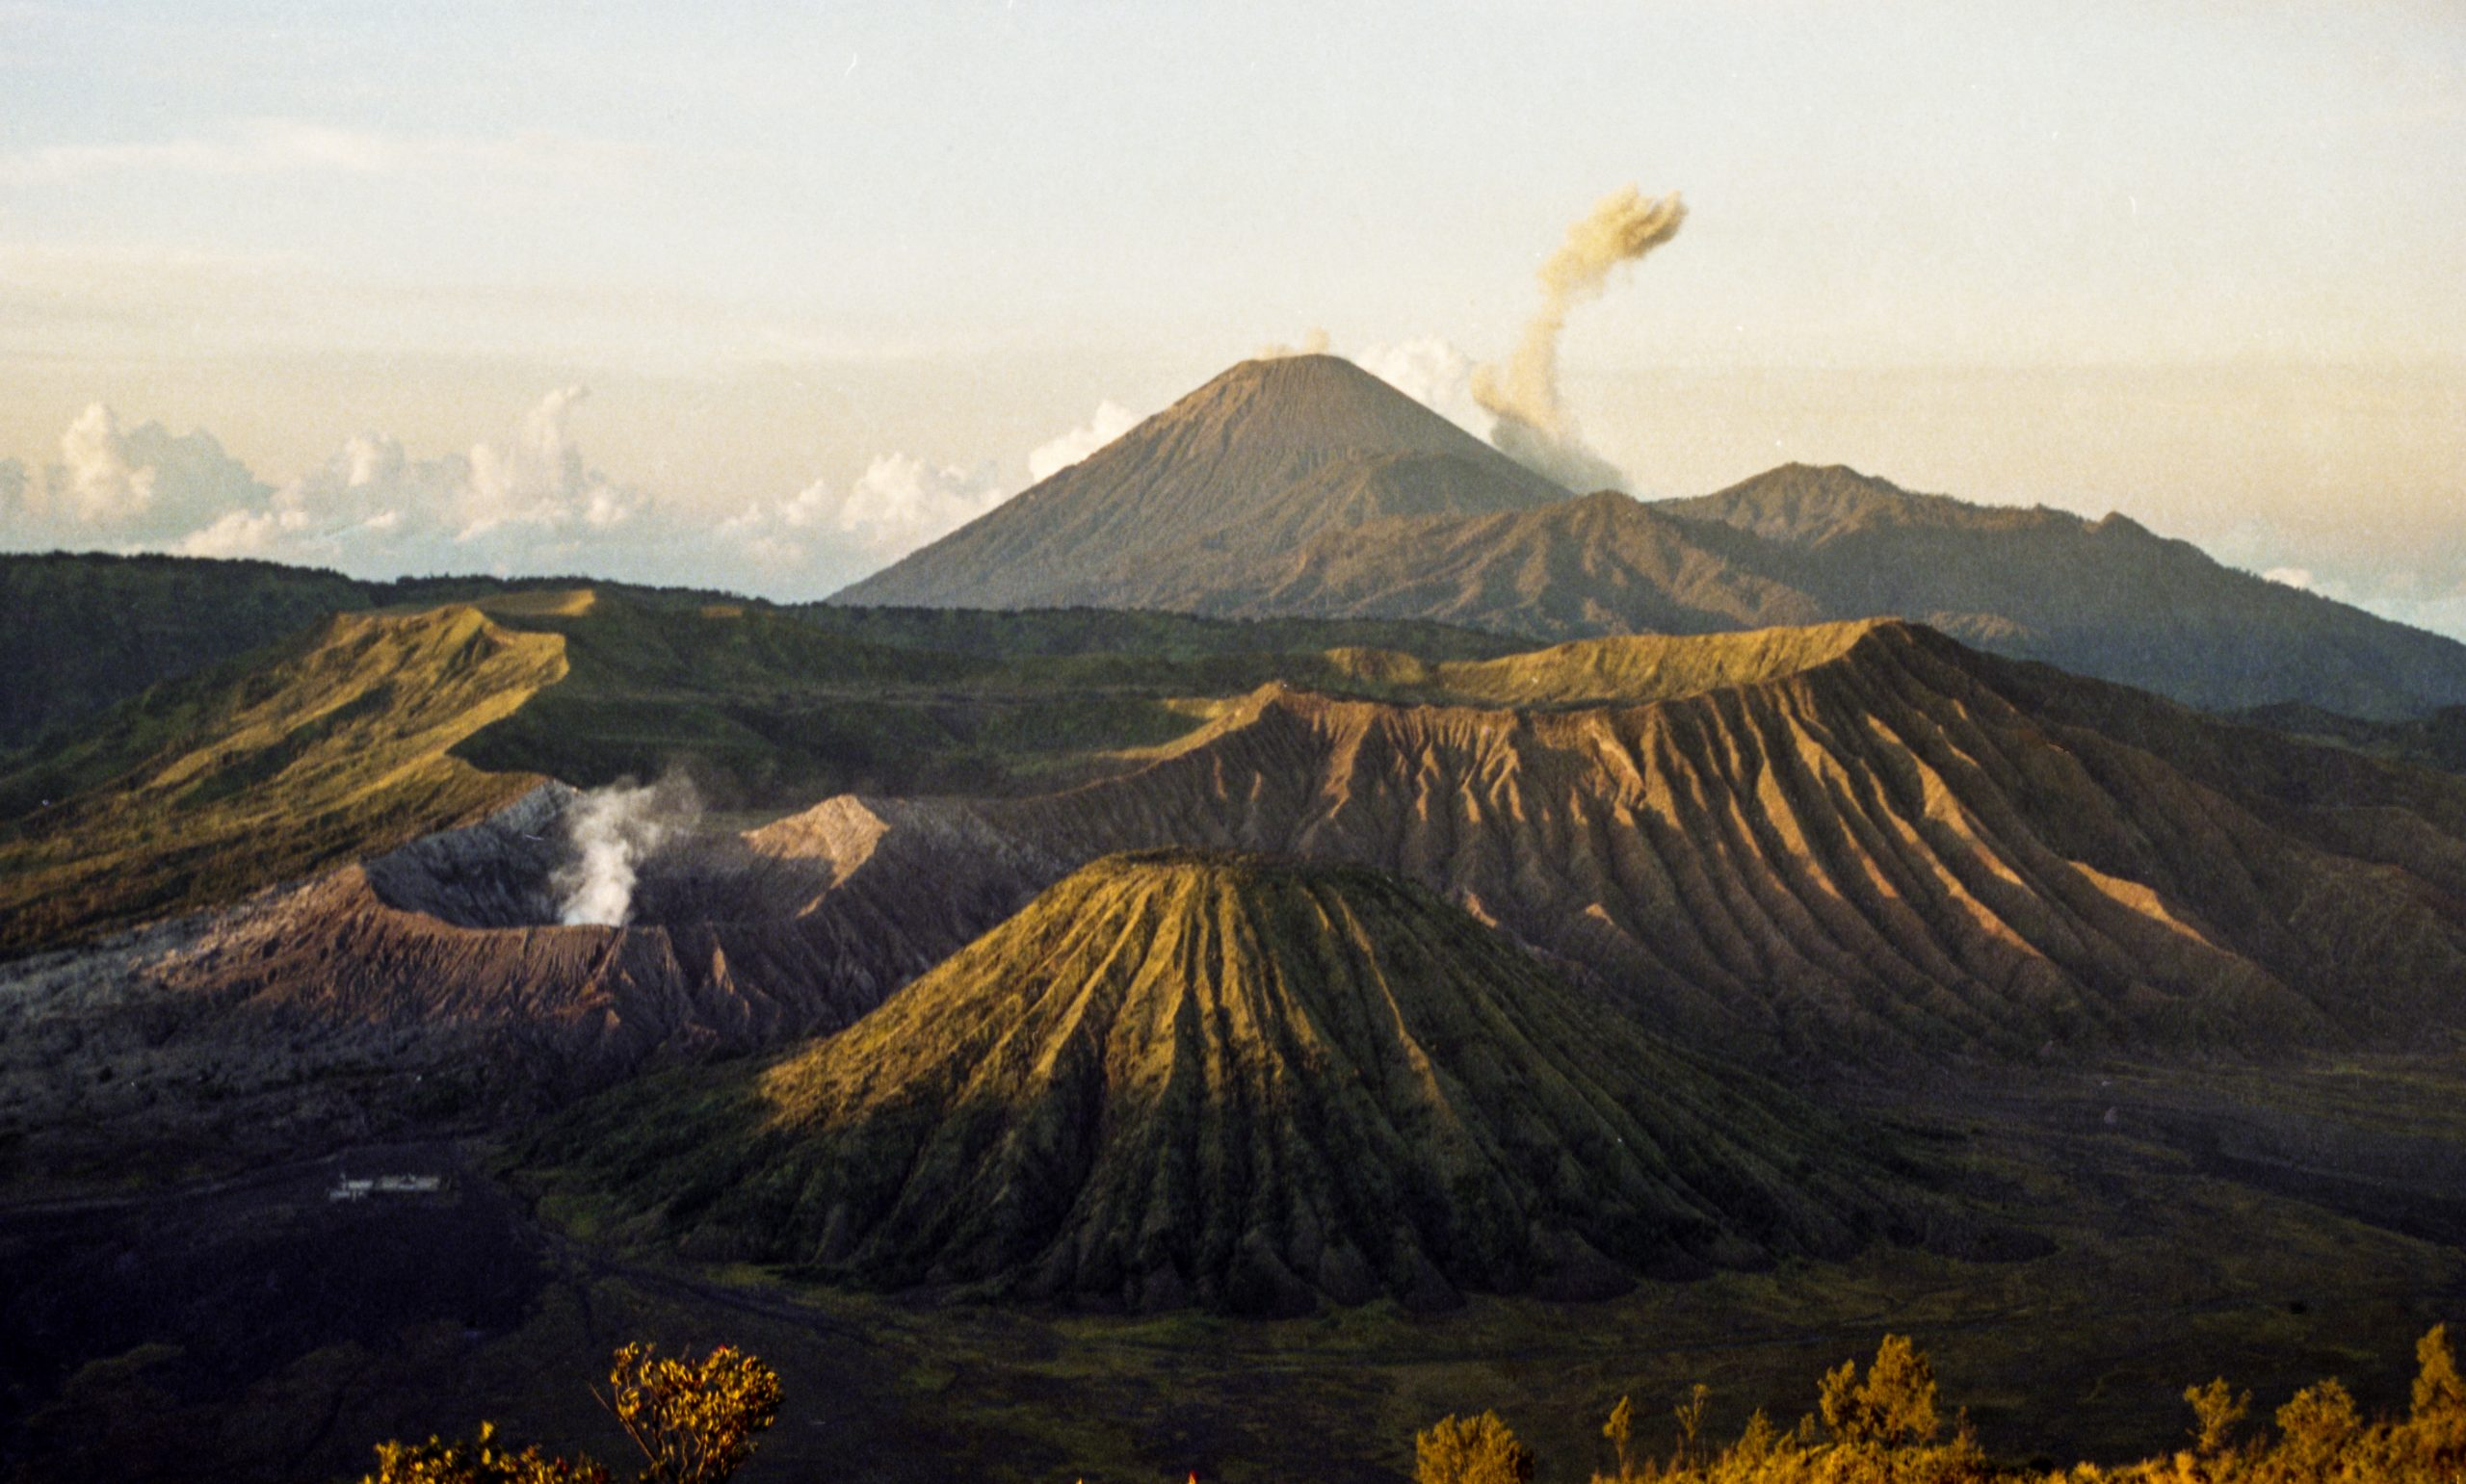 Mount Bromo, Java, Indonesia, Asia